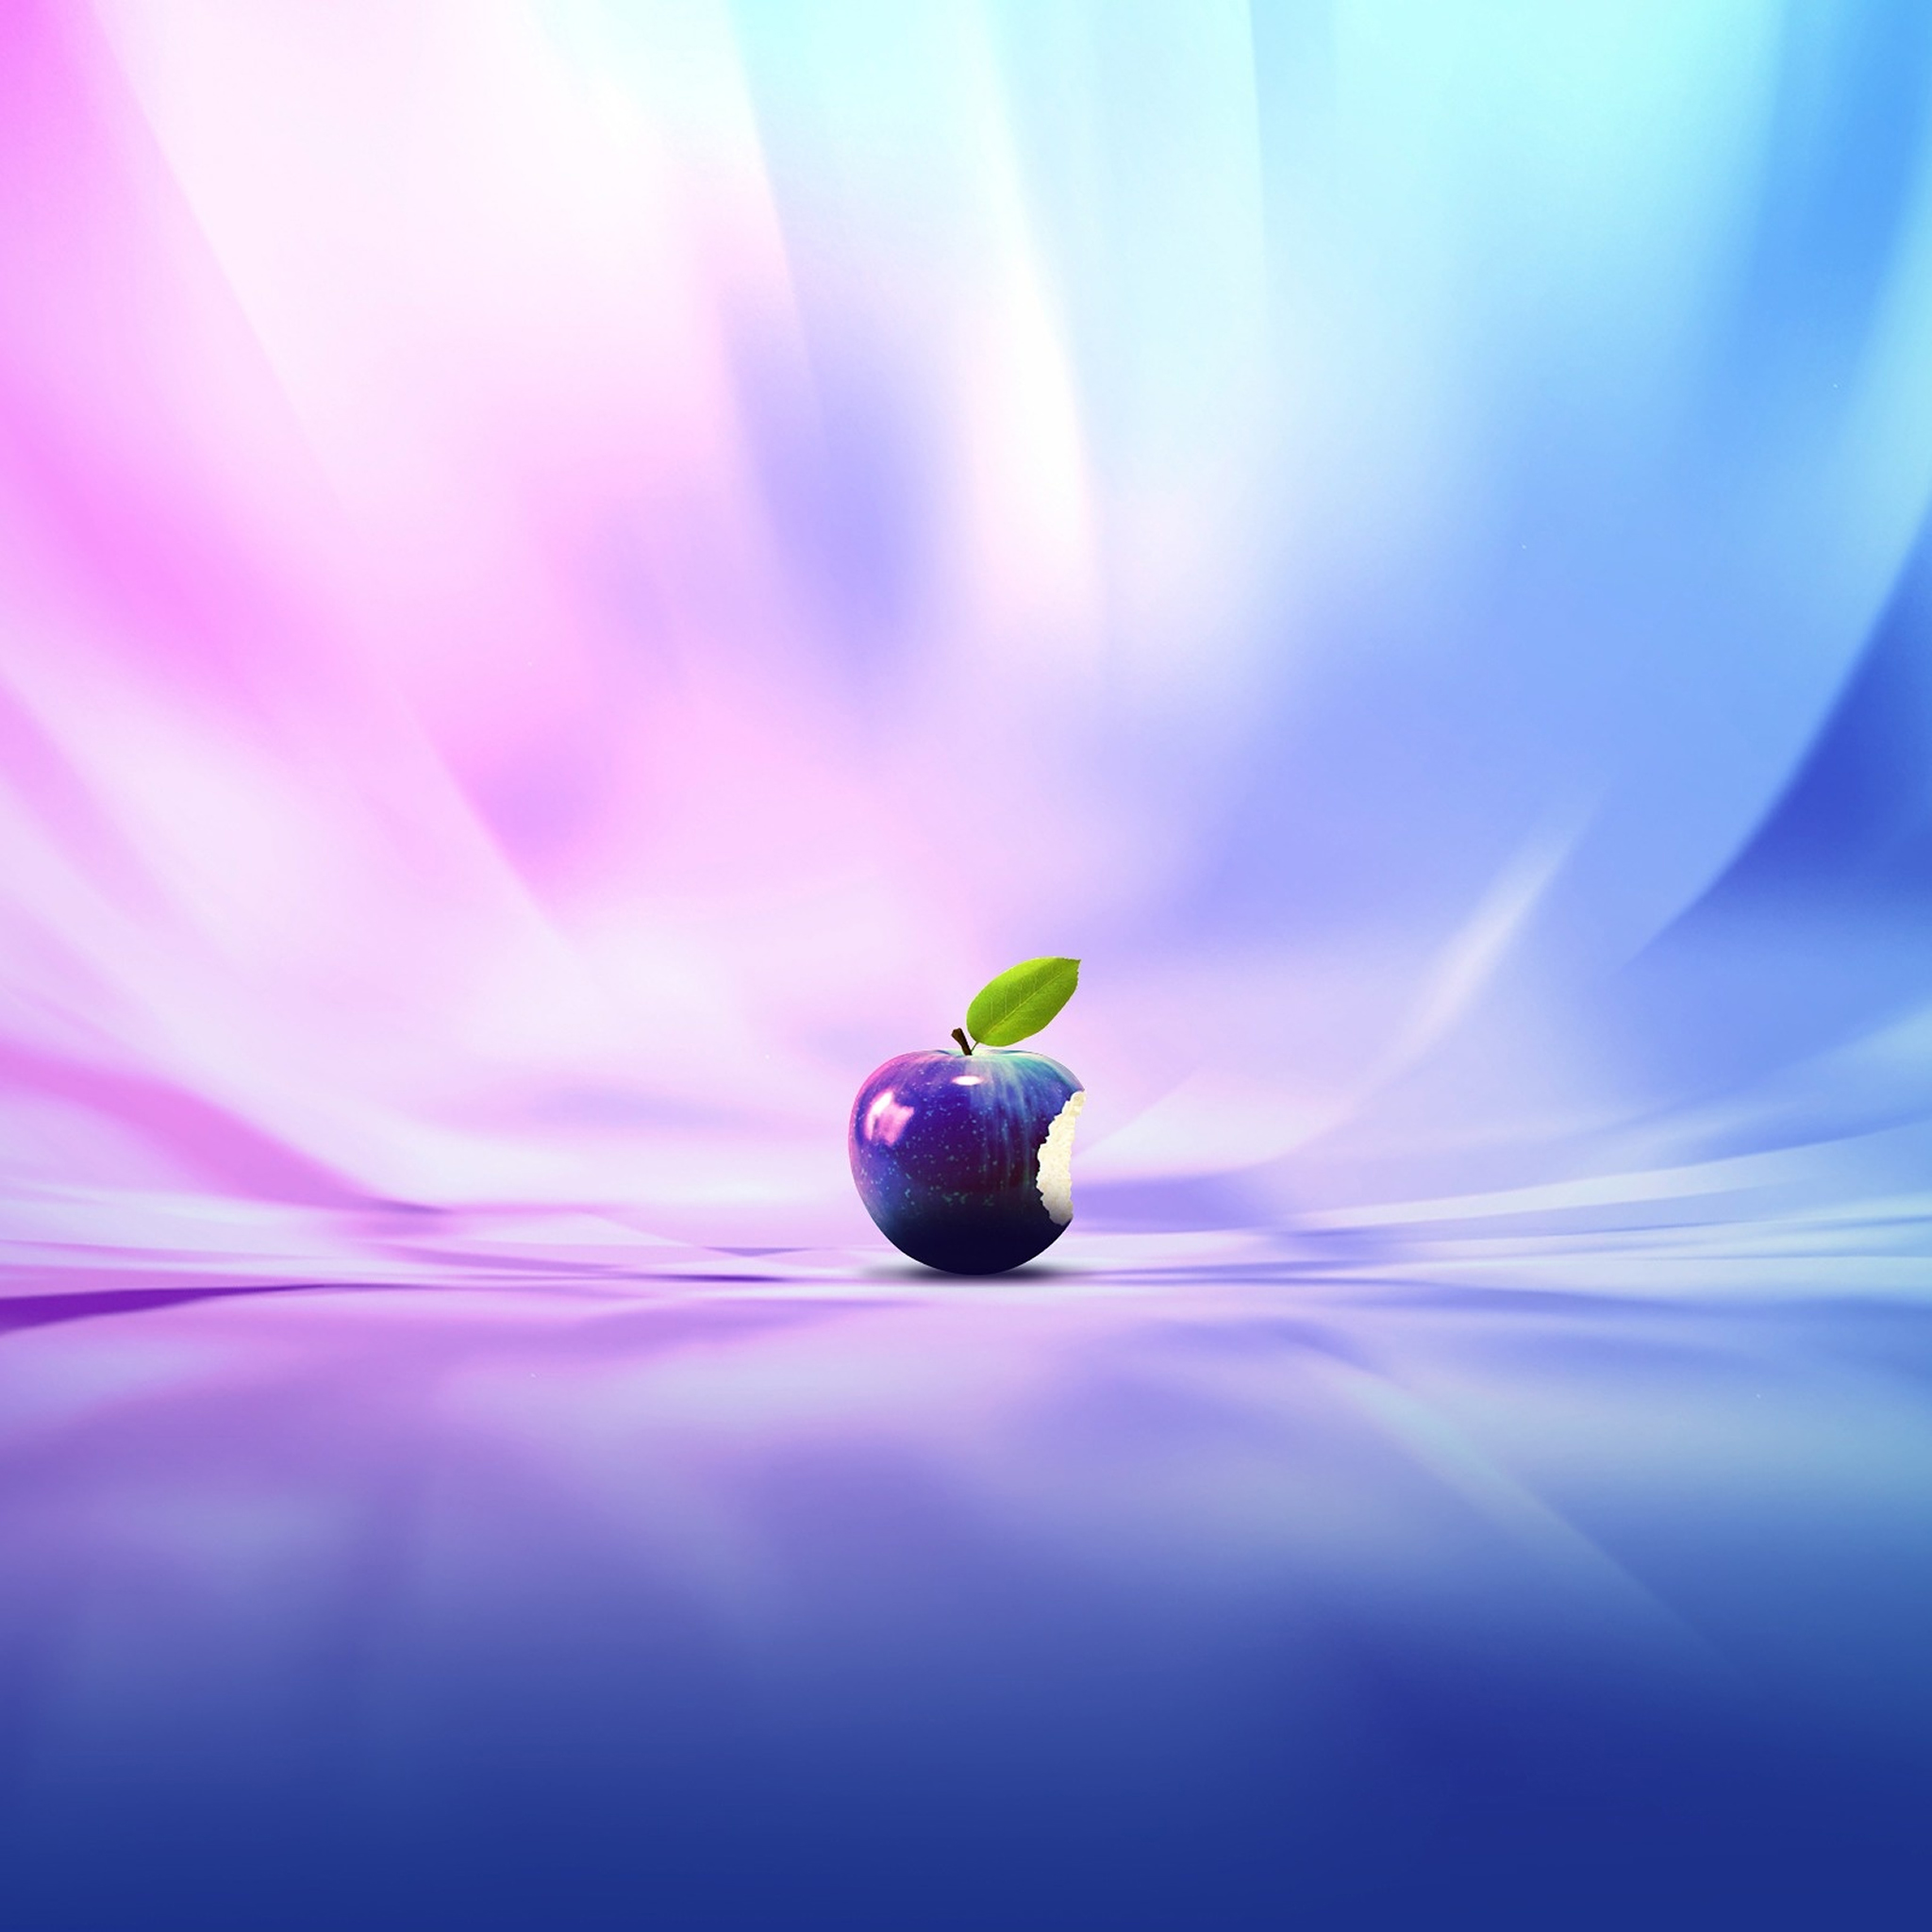 Blue Light Apple 3Wallpapers iPad Retina Blue Light Apple   iPad Retina